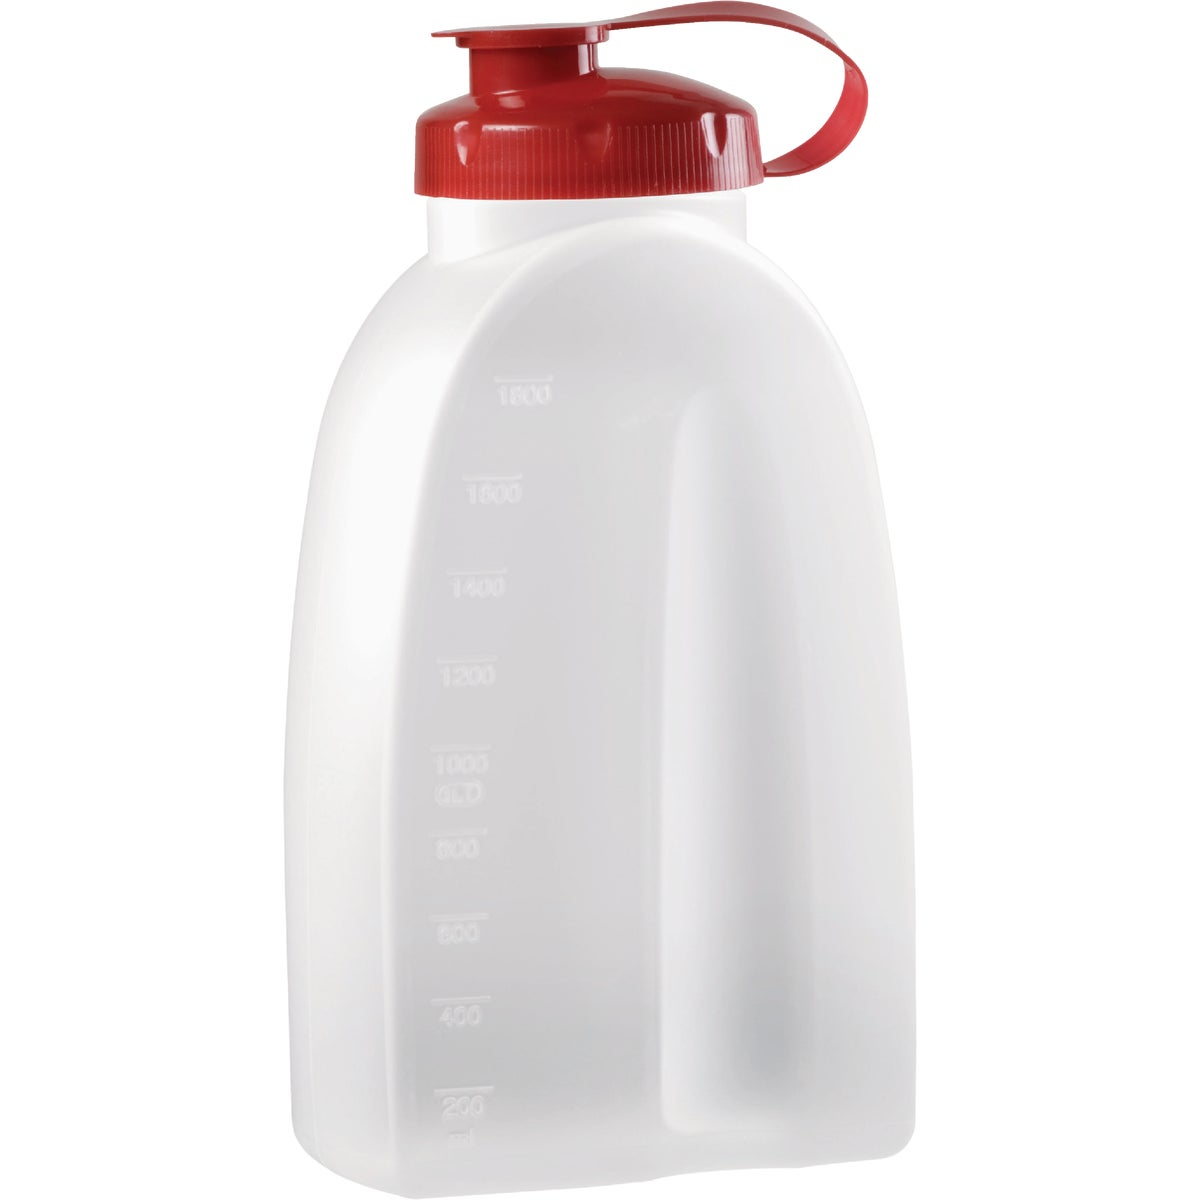 1QT BEVERAGE STRG BOTTLE - 1776348 by Rubbermaid Home